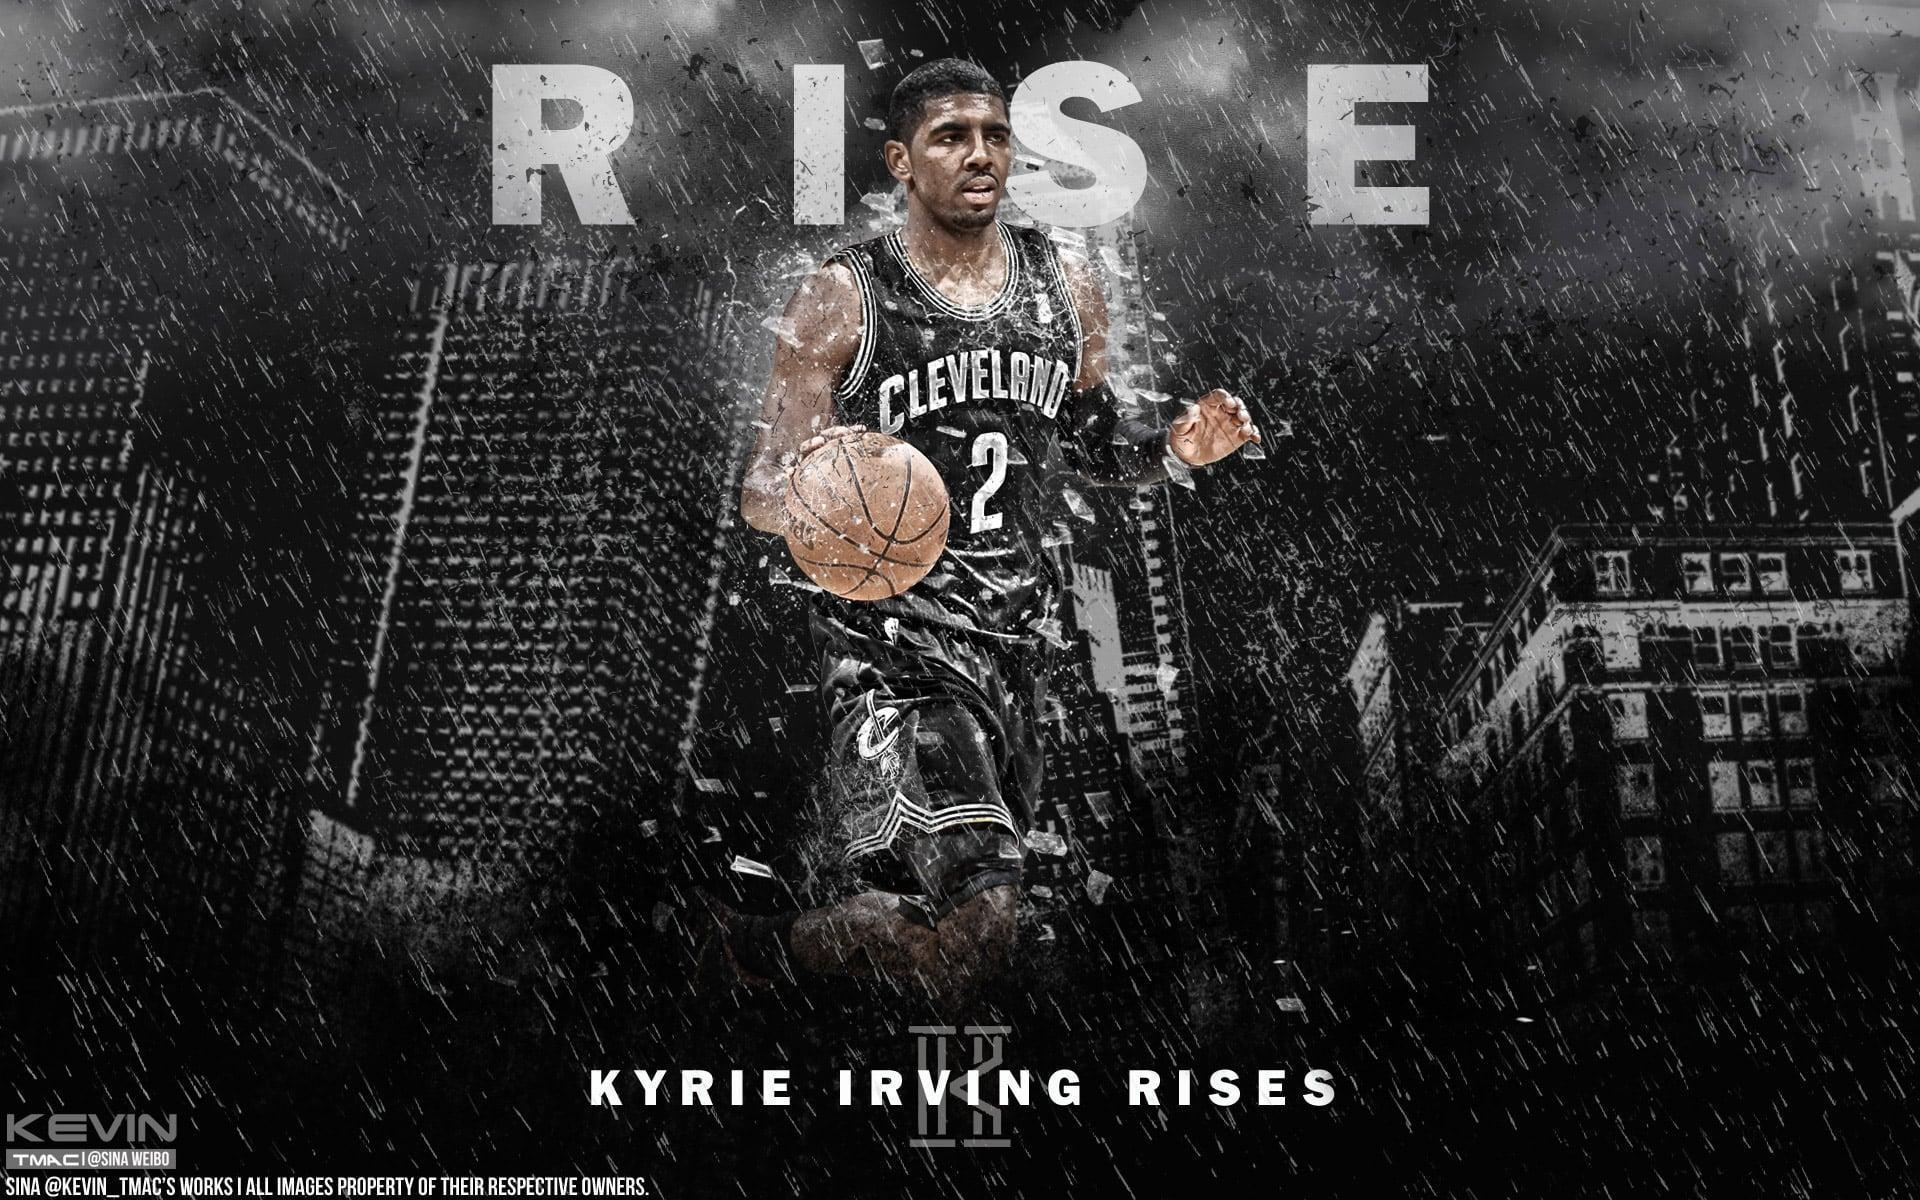 Kyrie Irving Wallpaper NBA - Android Apps on Google Play